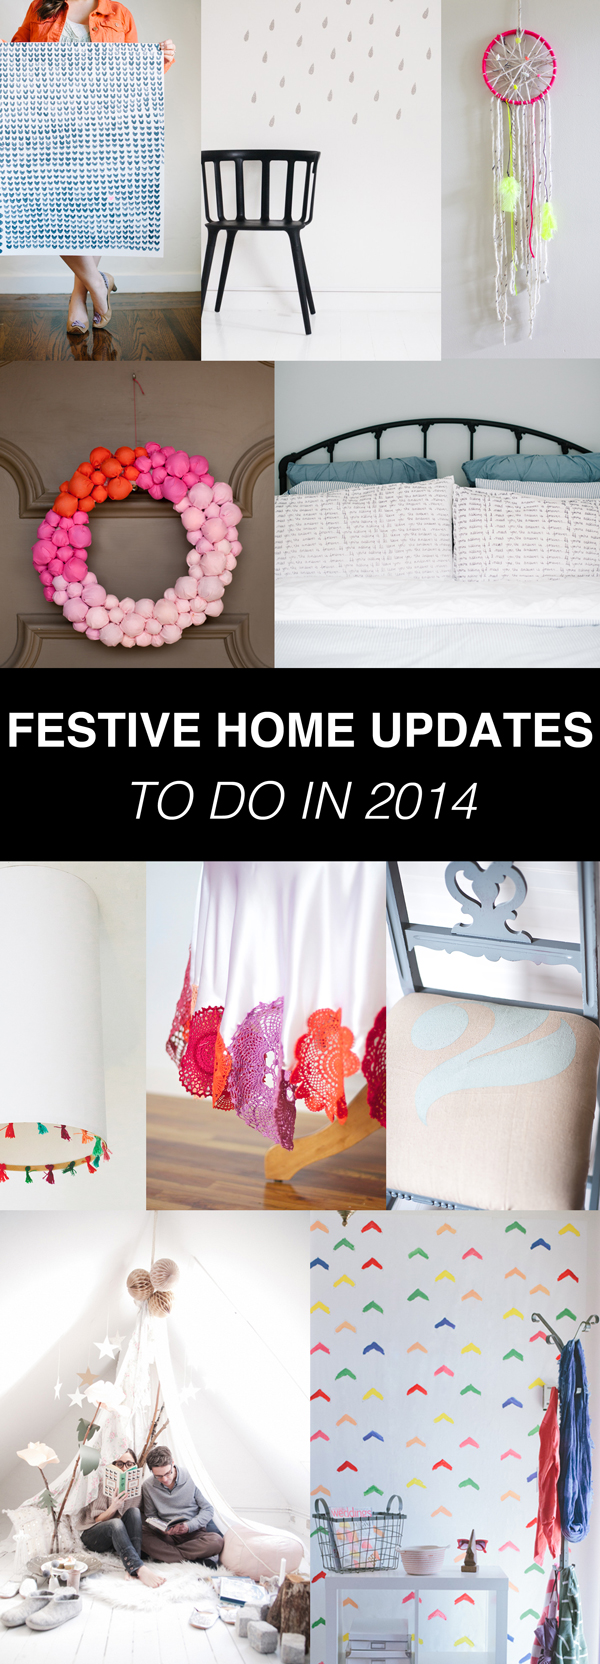 festive home updates